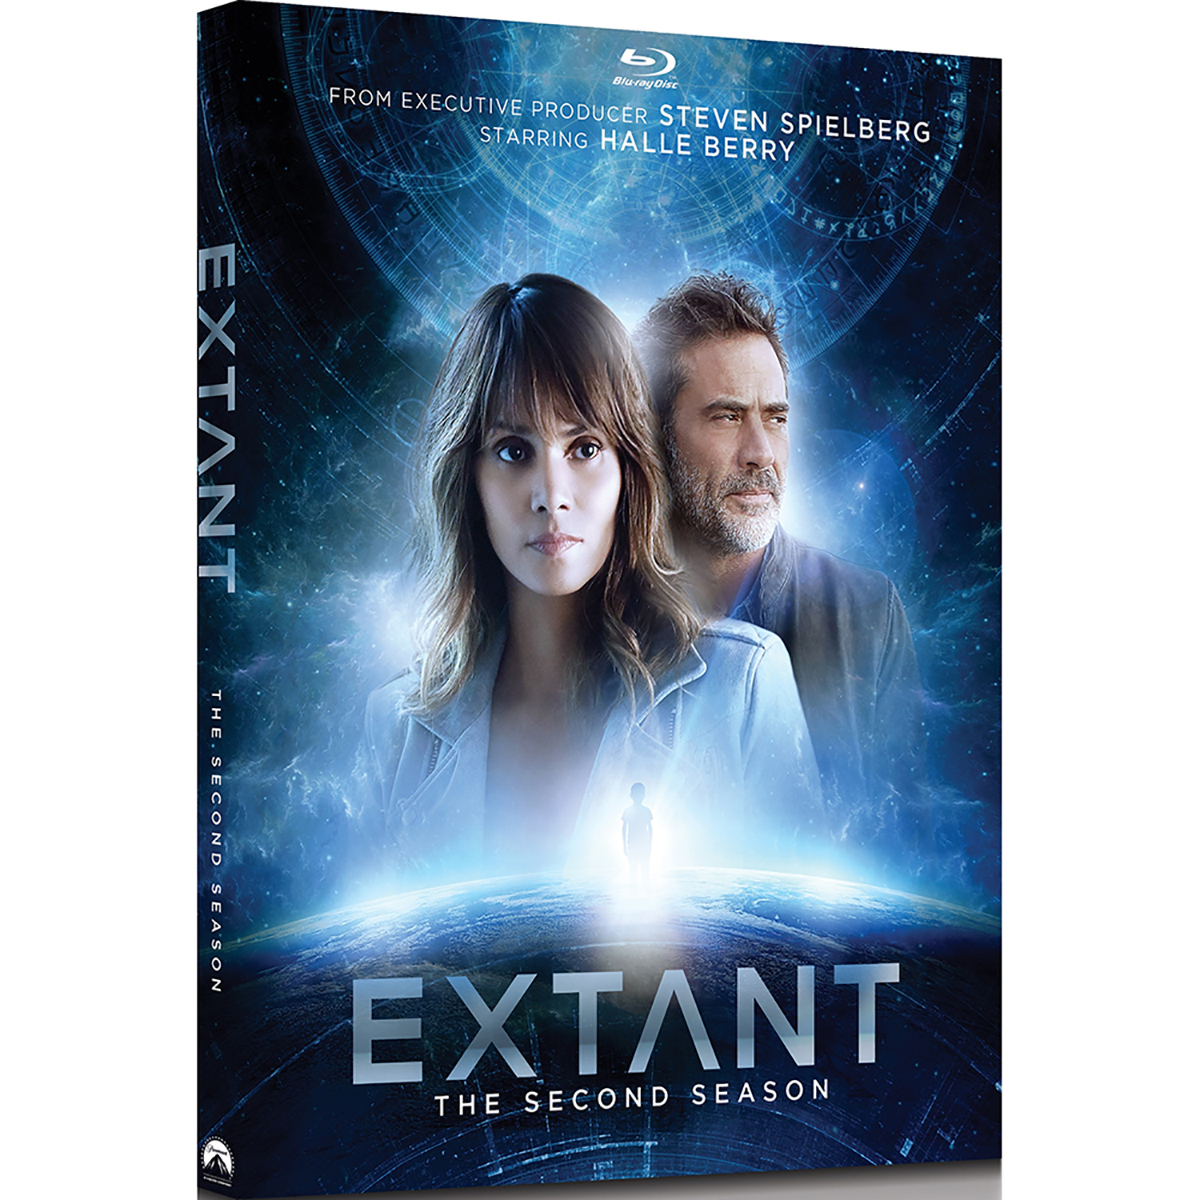 Extant: Season 2 Blu-ray -  DVDs & Videos 6445-921650